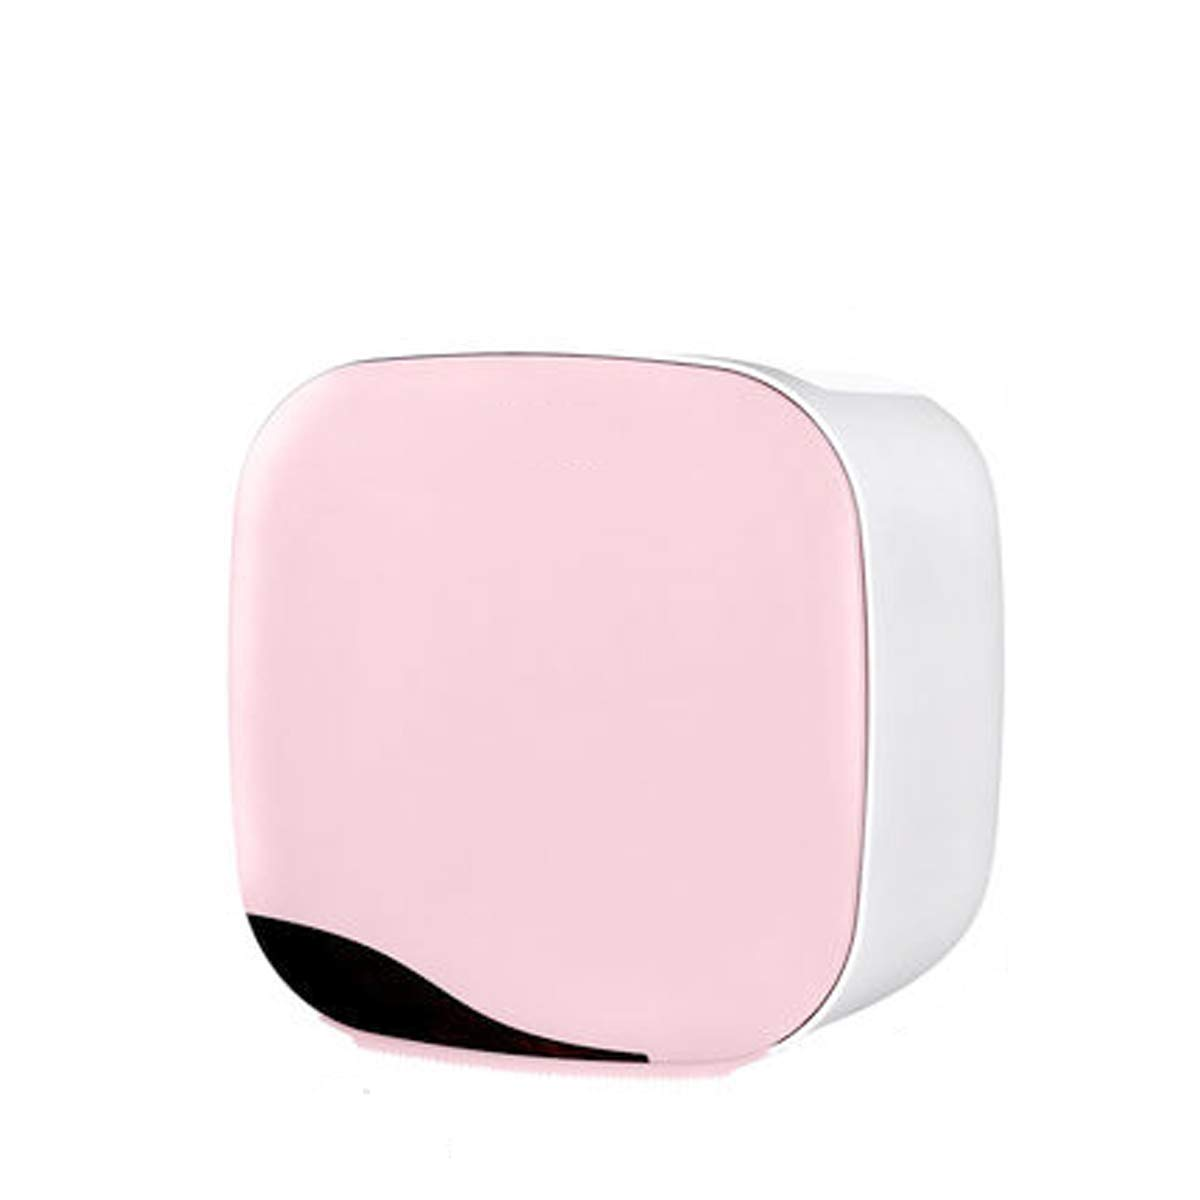 Q&F Wall Mount Toilet Paper Holder,Tissue Roll Hanger,Toilet Paper Roll Holder With Storage Box-anti-rust,Waterproof,Punch Free,Abs Plastic-pink